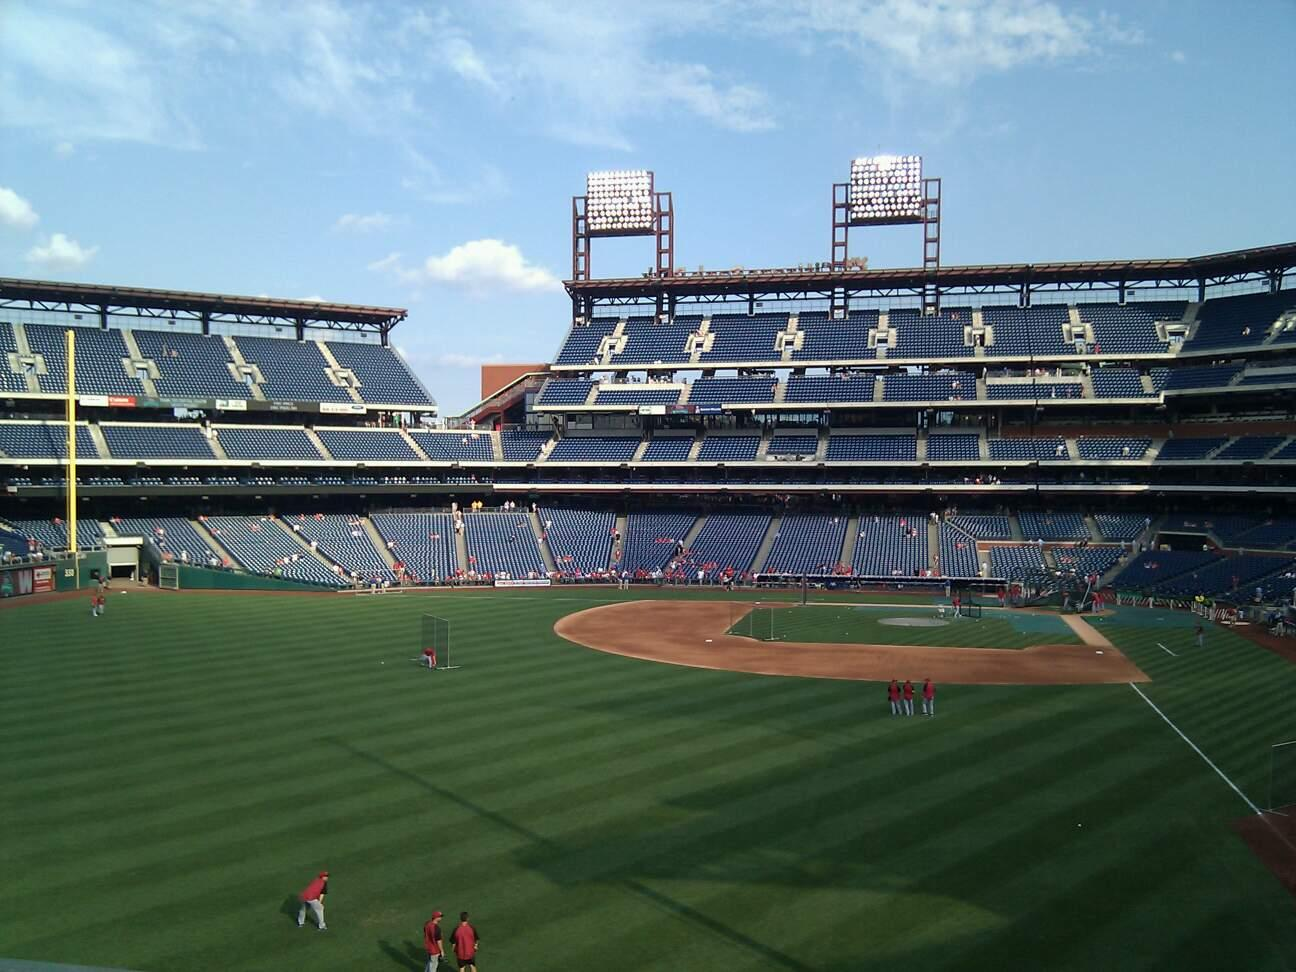 Citizens Bank Park Section 241 Row 1 Seat 16